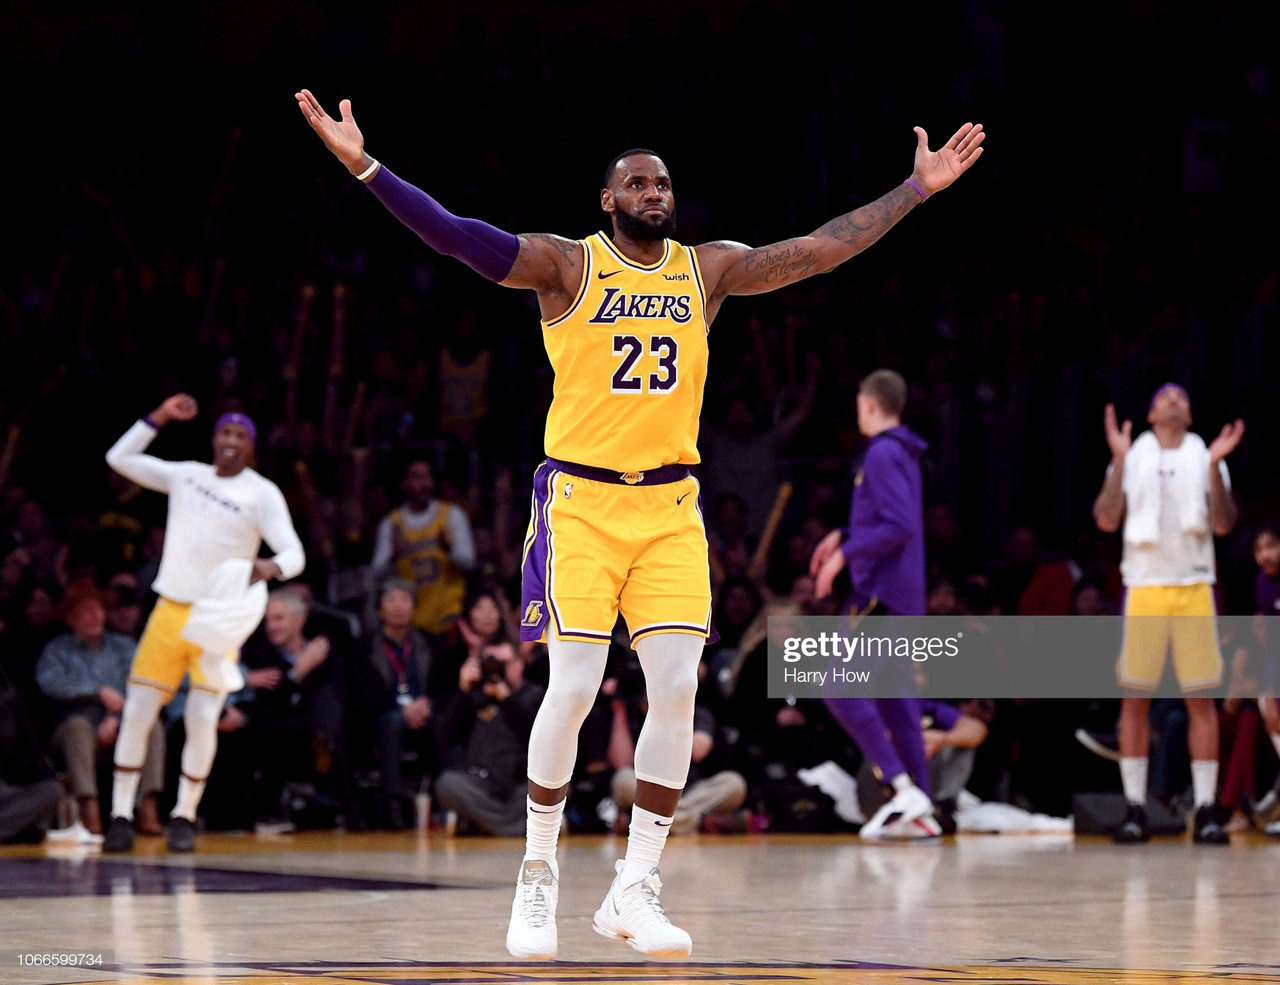 Lakers Secure Playoff Berth